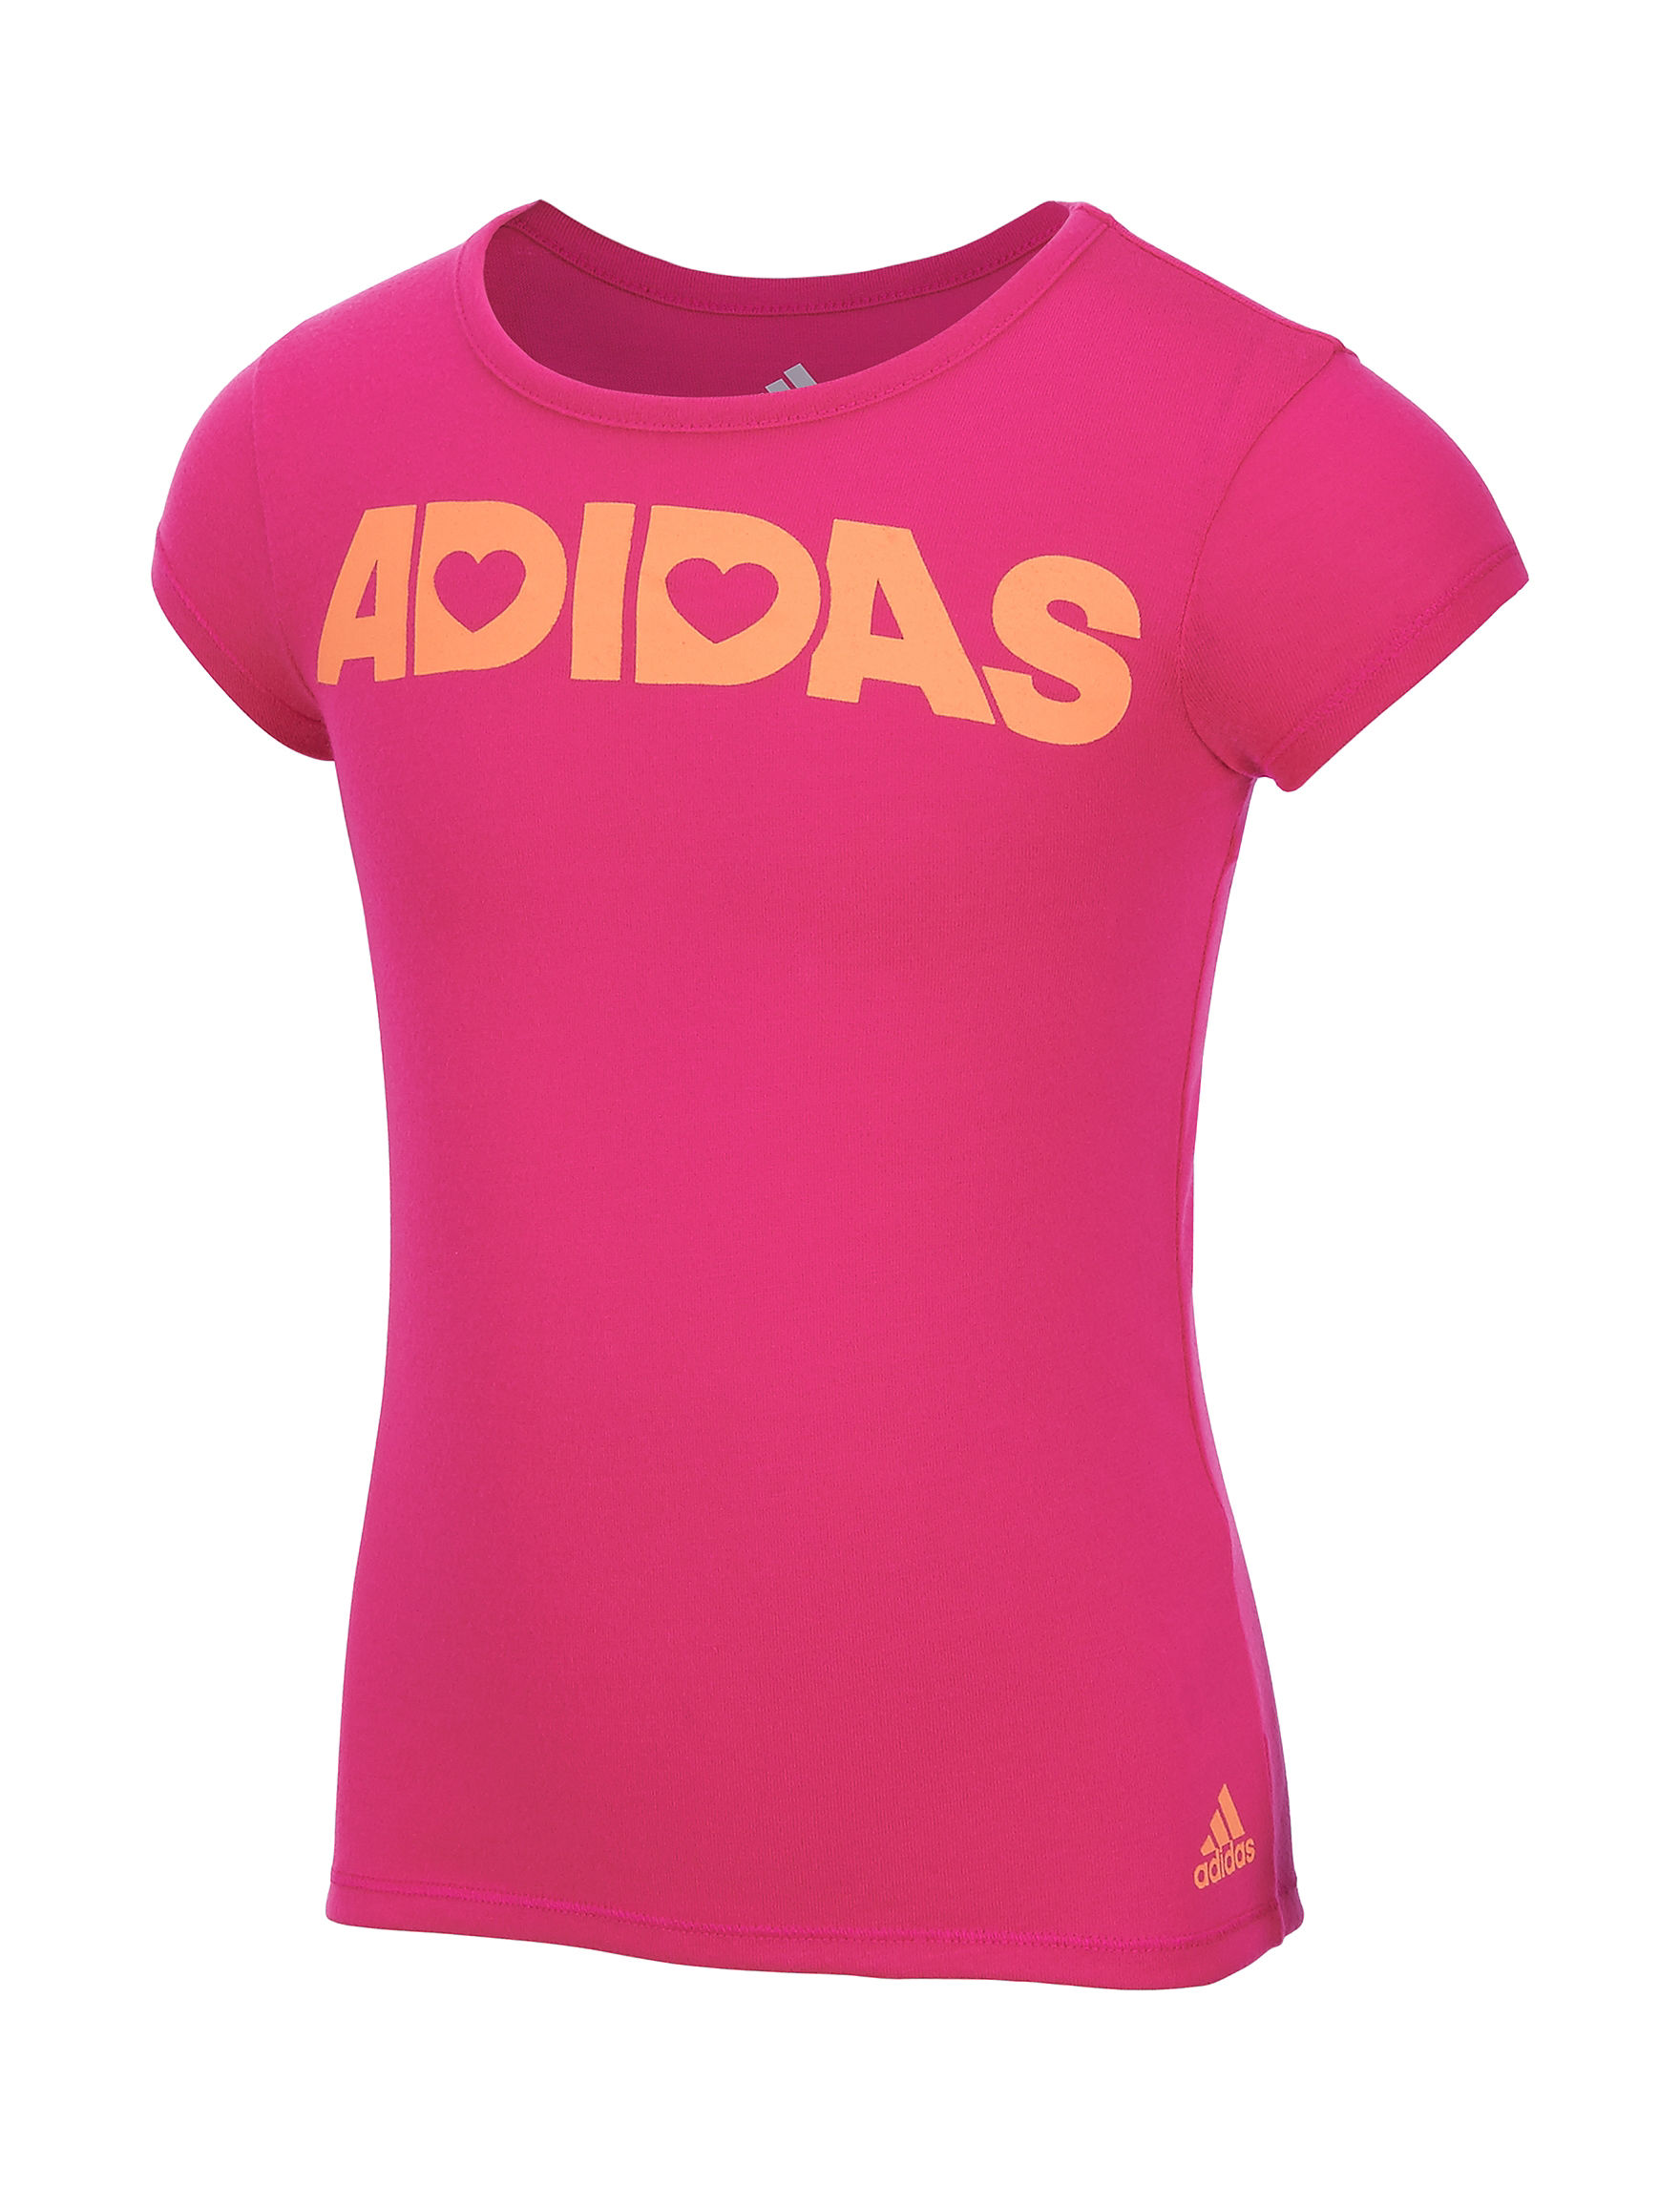 Adidas Medium Pink Tees & Tanks